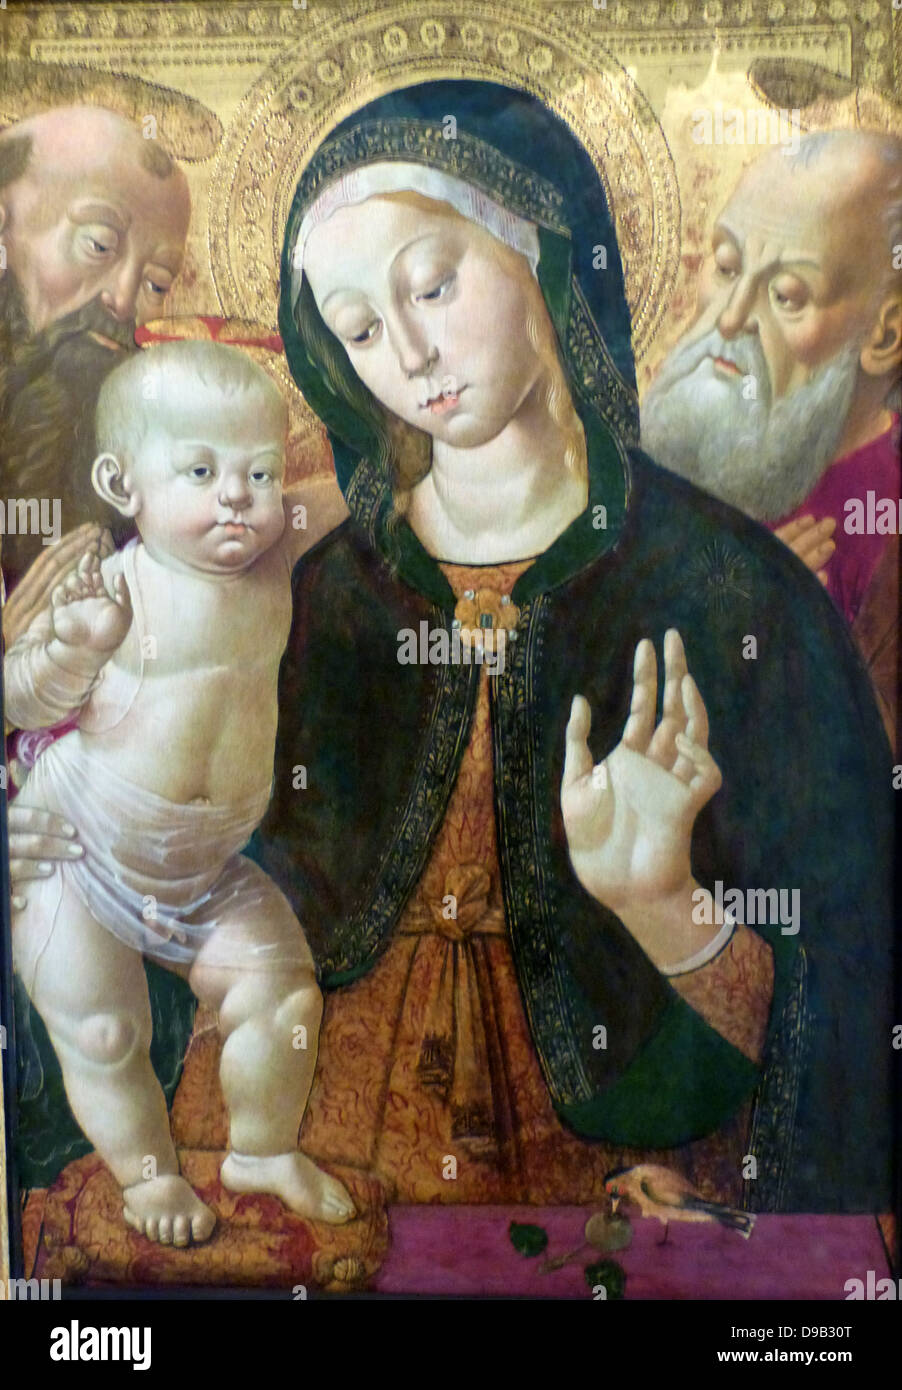 The Virgin and Child with two Saints about 1500. Oil on panel, Sienna, Italy.  Bernardino Fungai 1460-1516 approx. - Stock Image